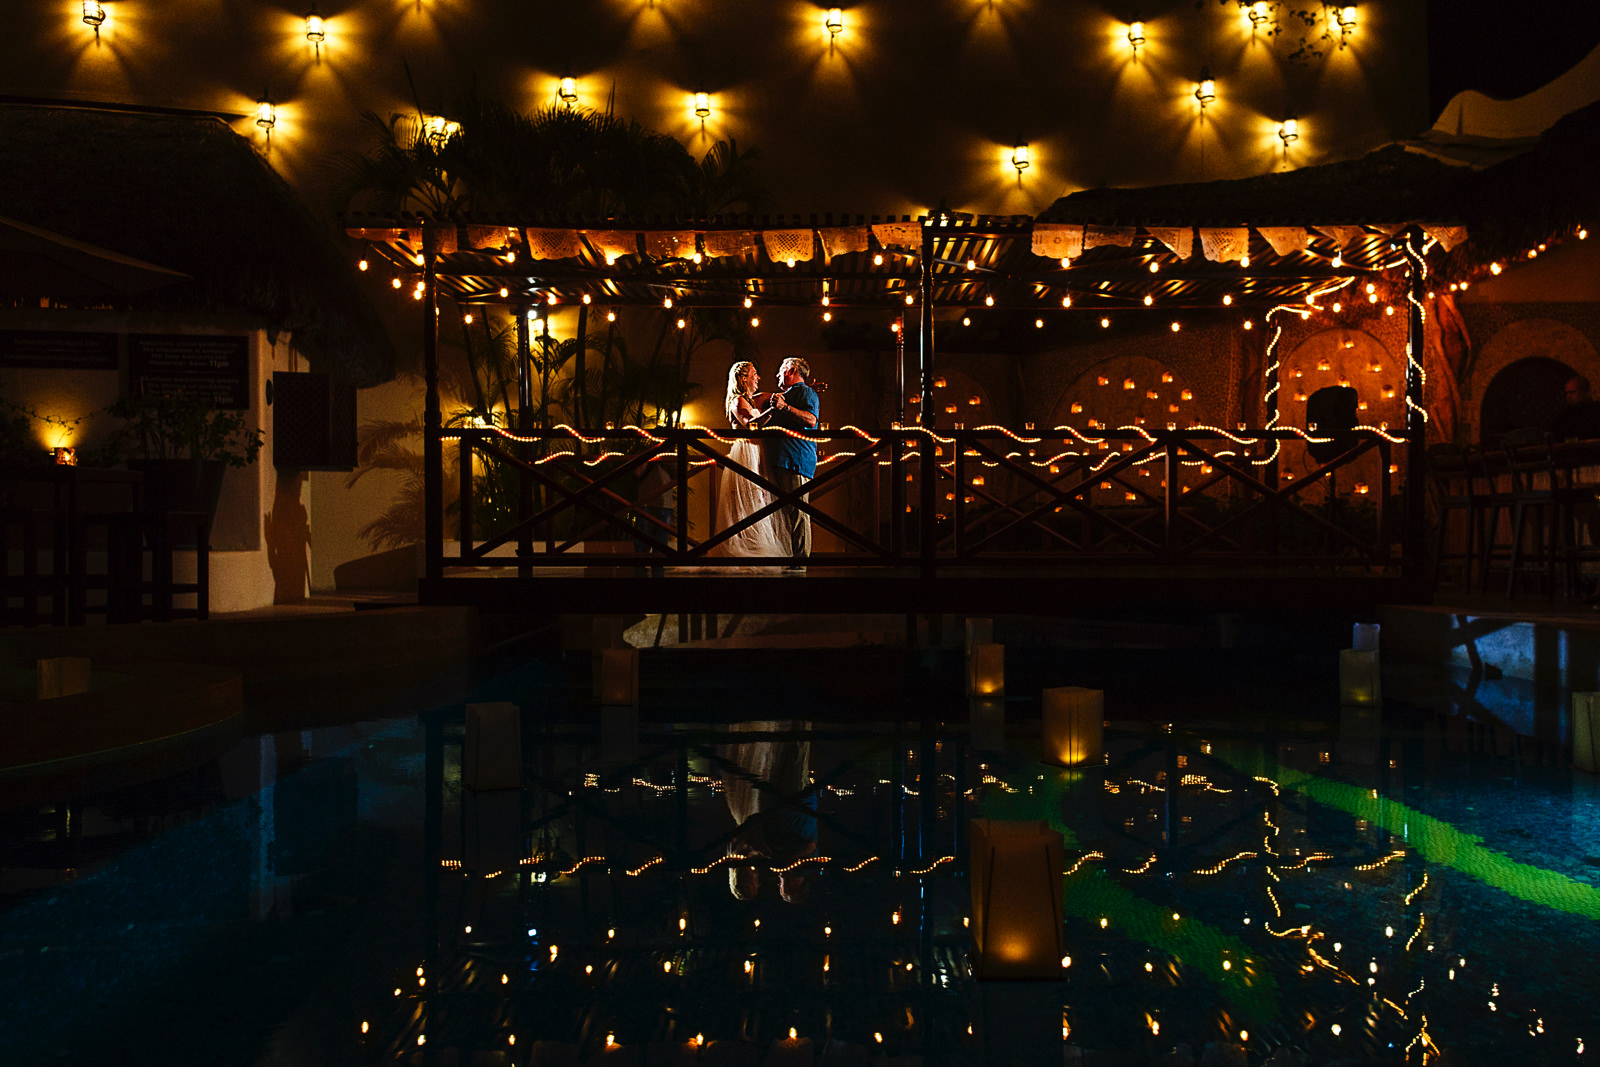 bride-father-dance-hotel-playa-fiesta-dancefloor-pool-candles-lights.jpg